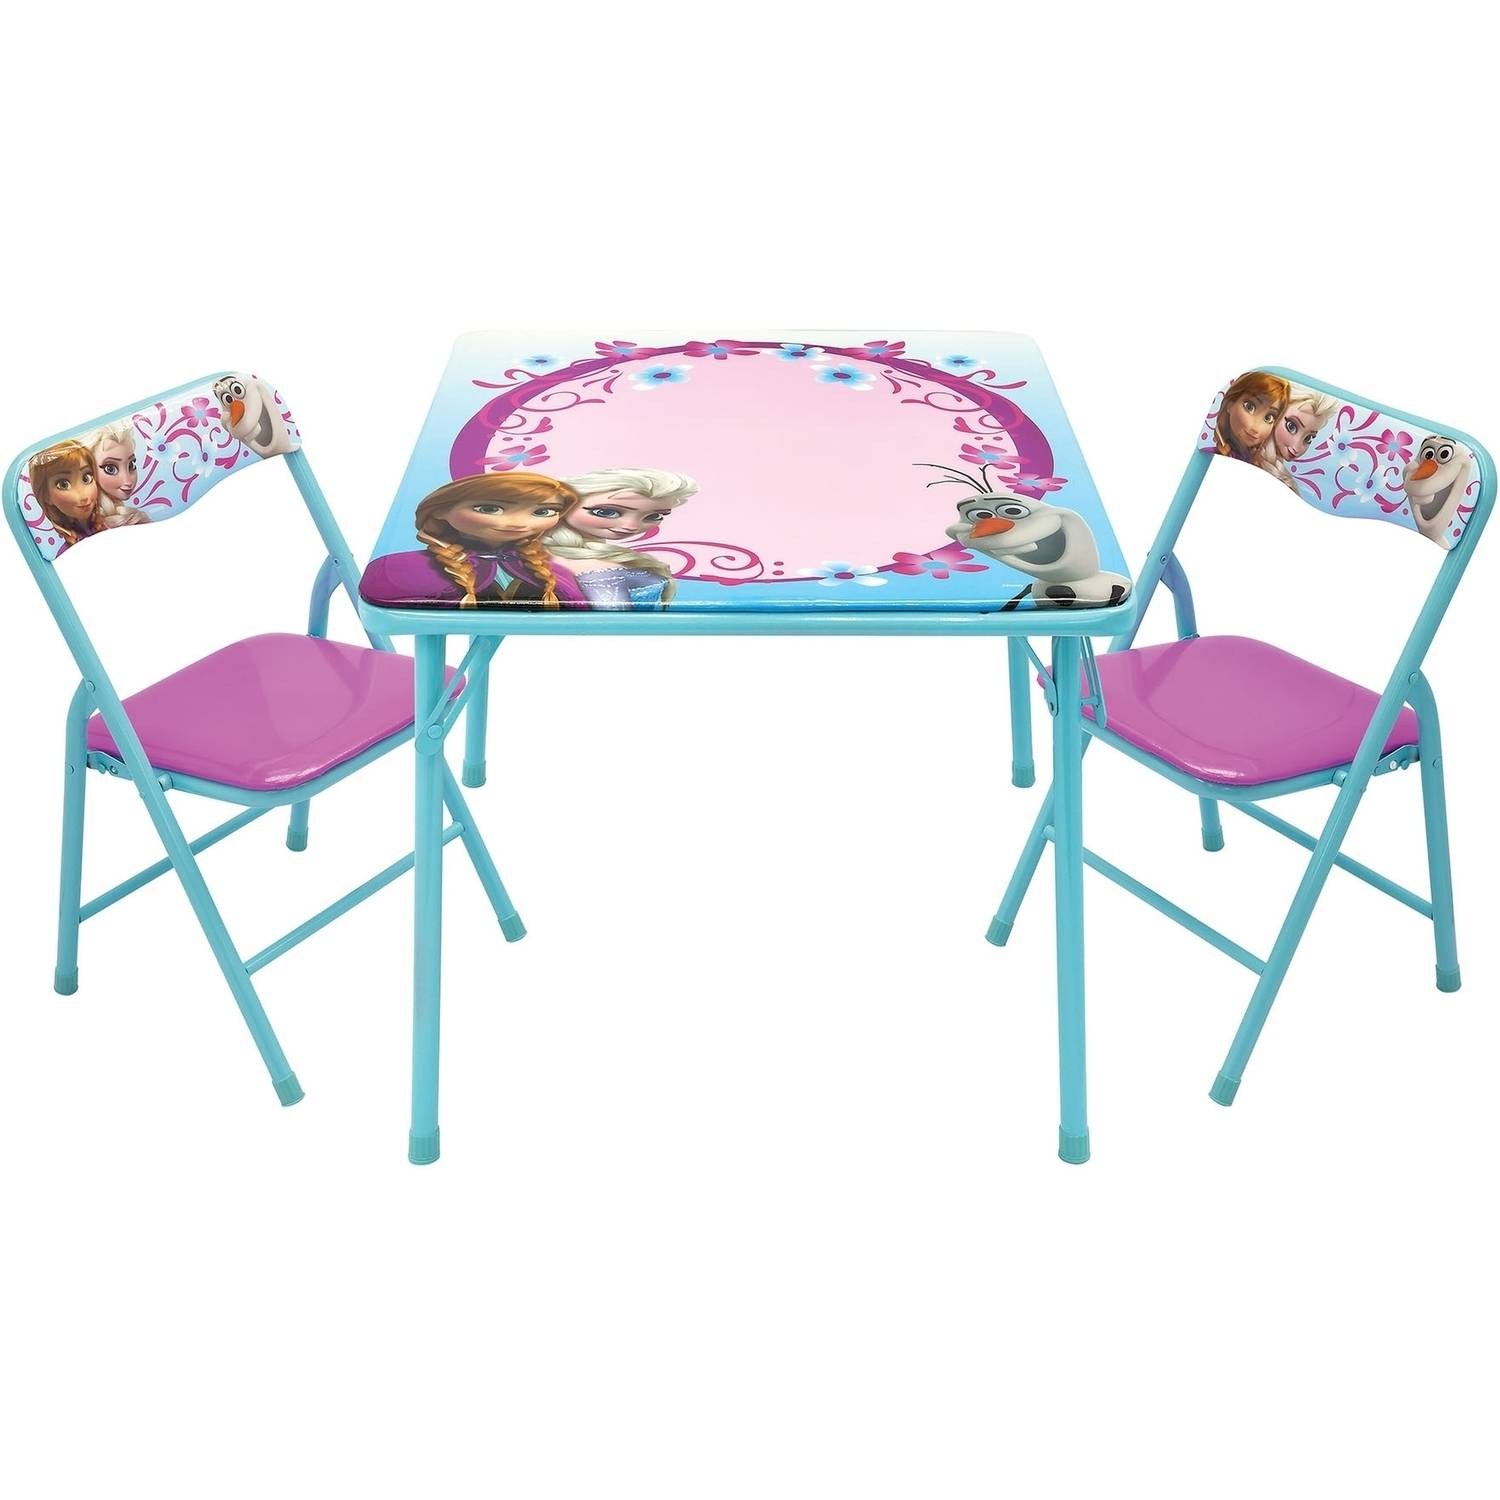 Activity Chair Disney Frozen Erasable Activity Table Set With 3 Markers